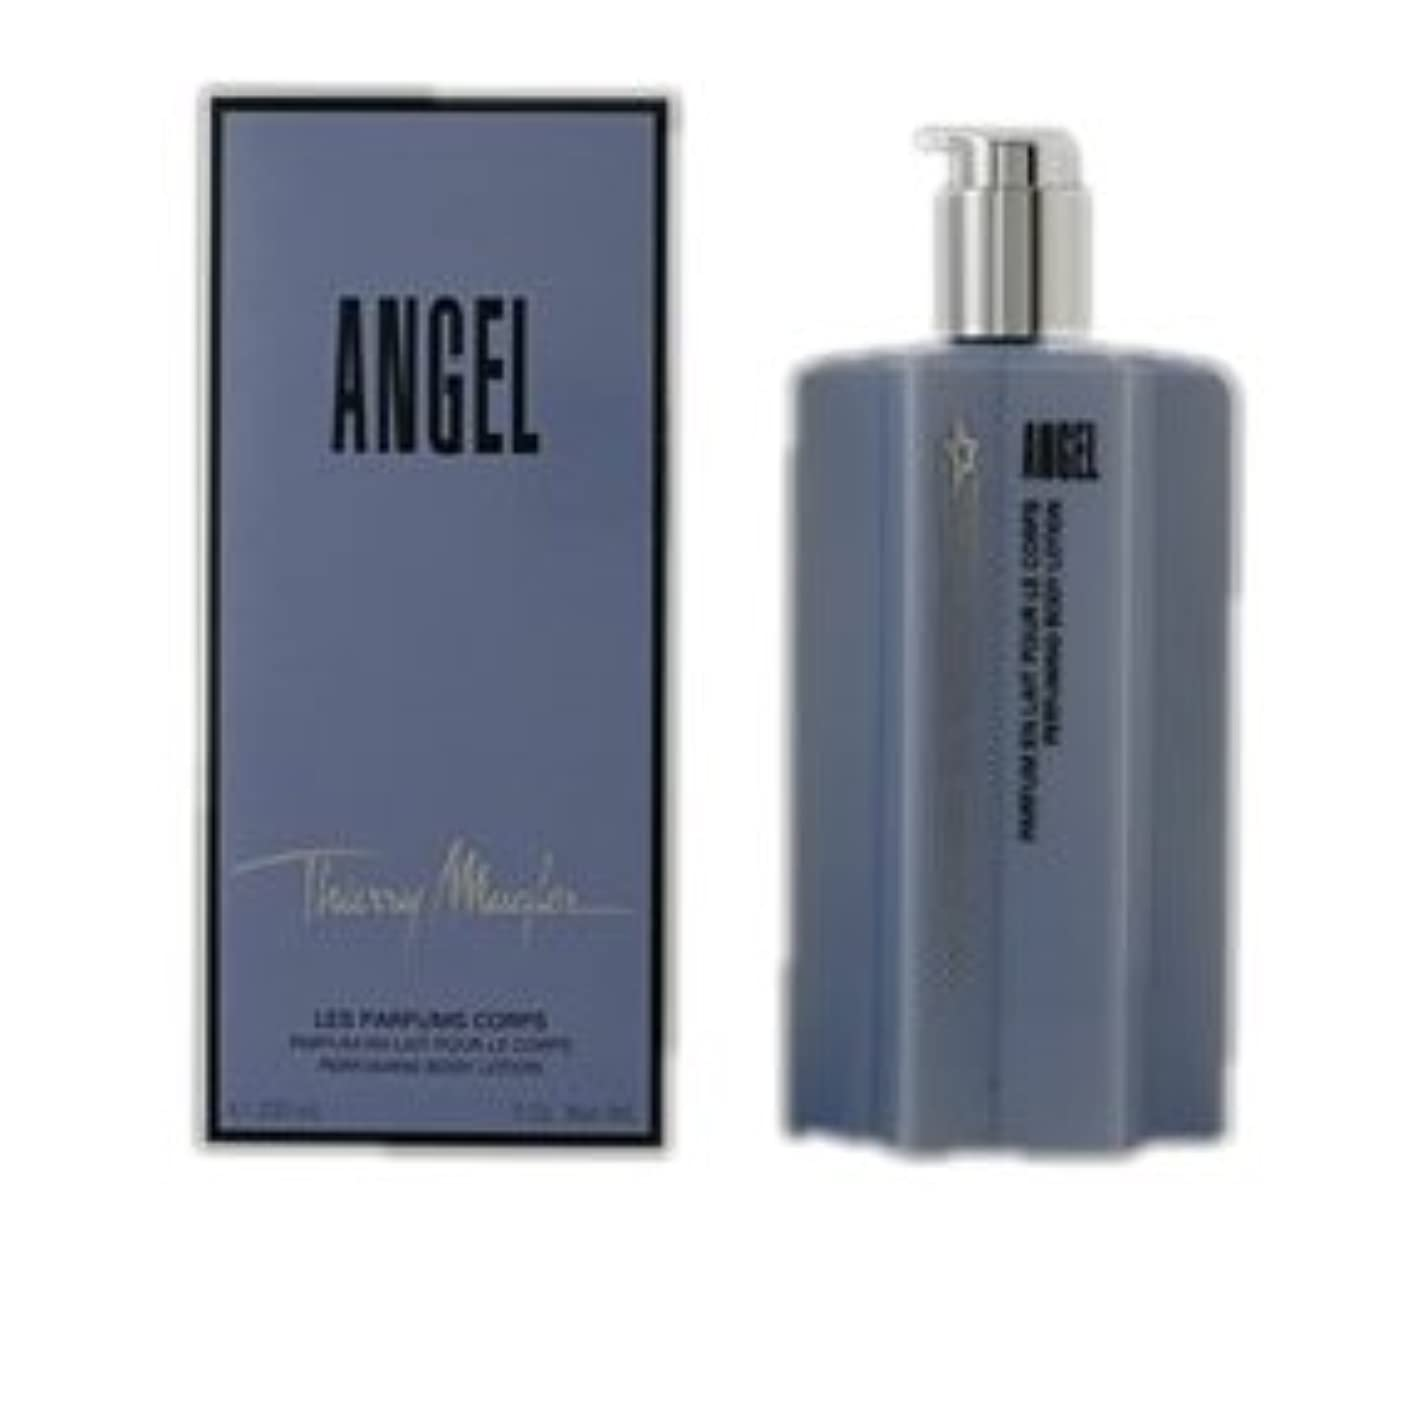 創傷変数基本的なThierry Mugler Angel Perfuming Body Lotion 200ml [並行輸入品]